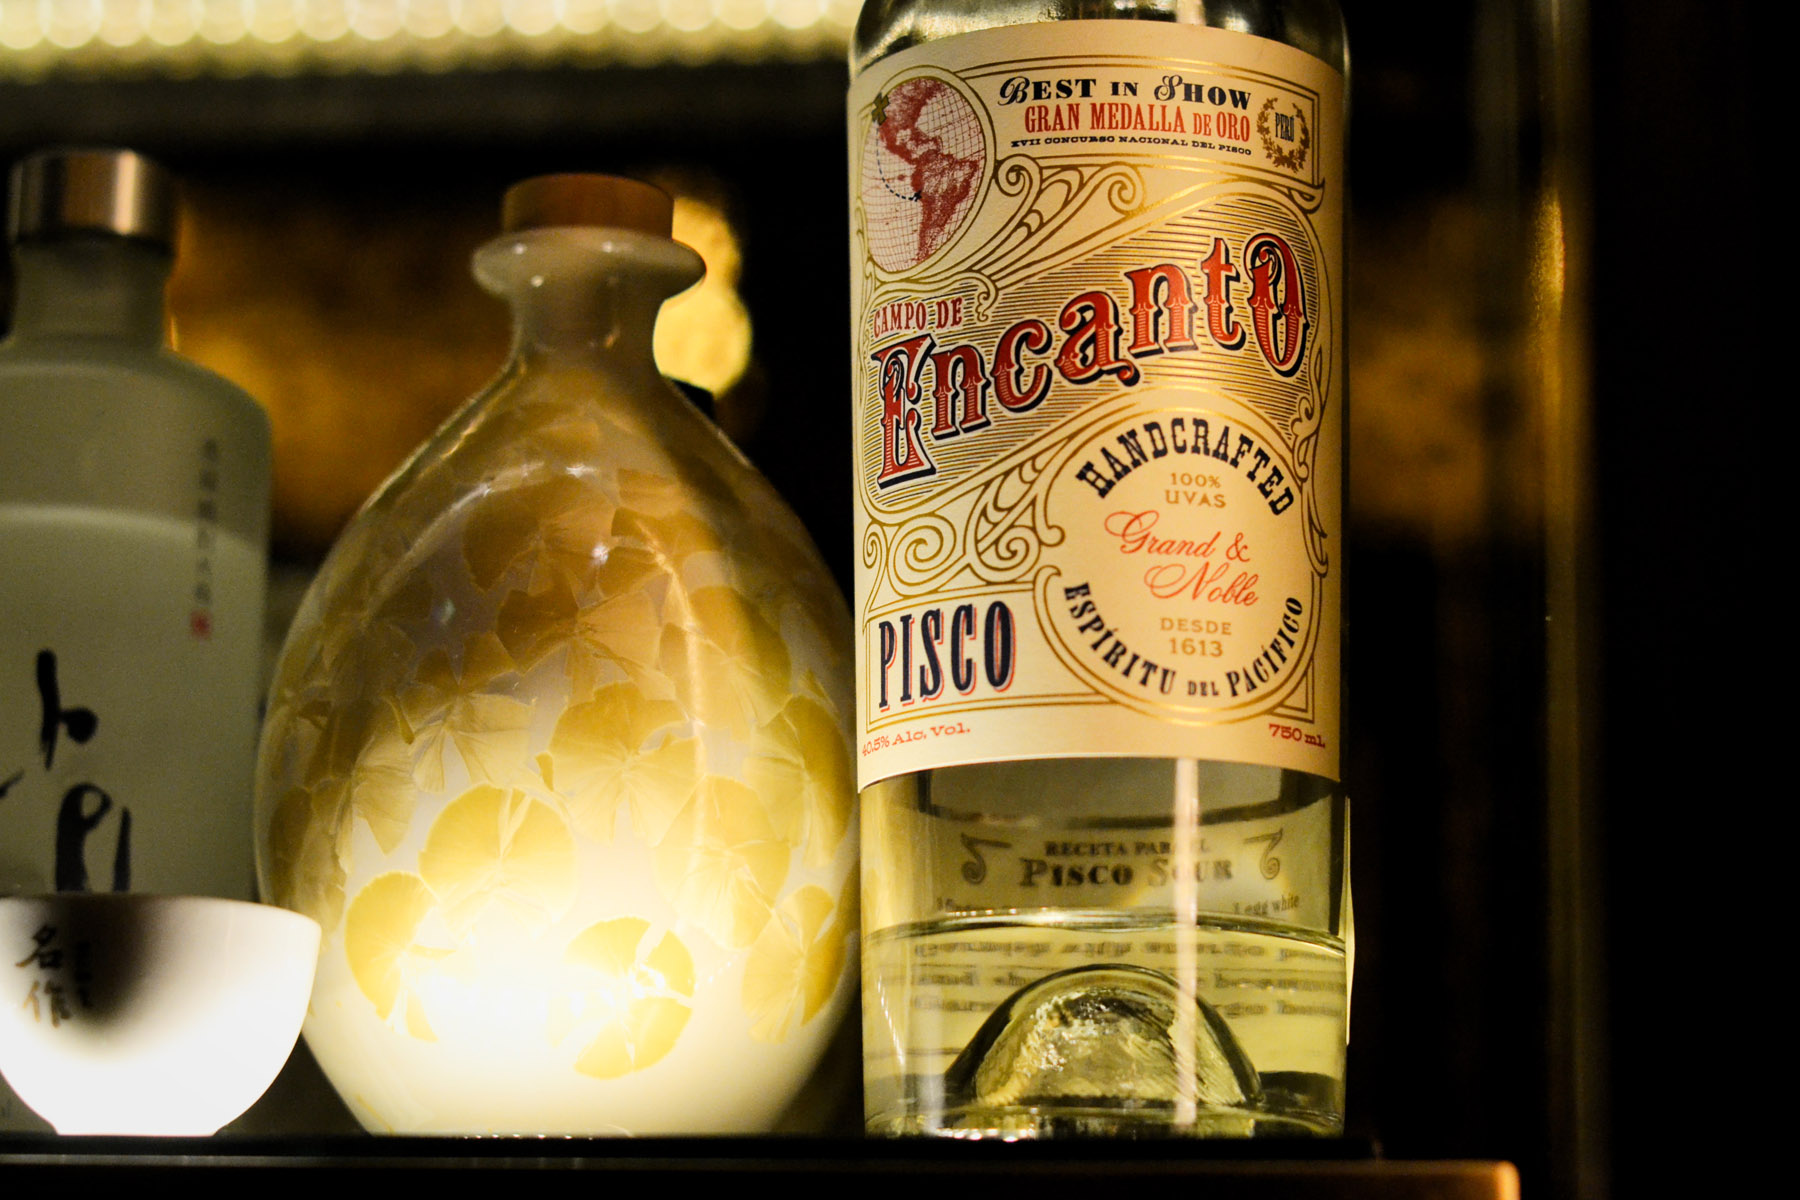 Pisco is only available in Korea thanks to months and months of paperwork and chemical testing.